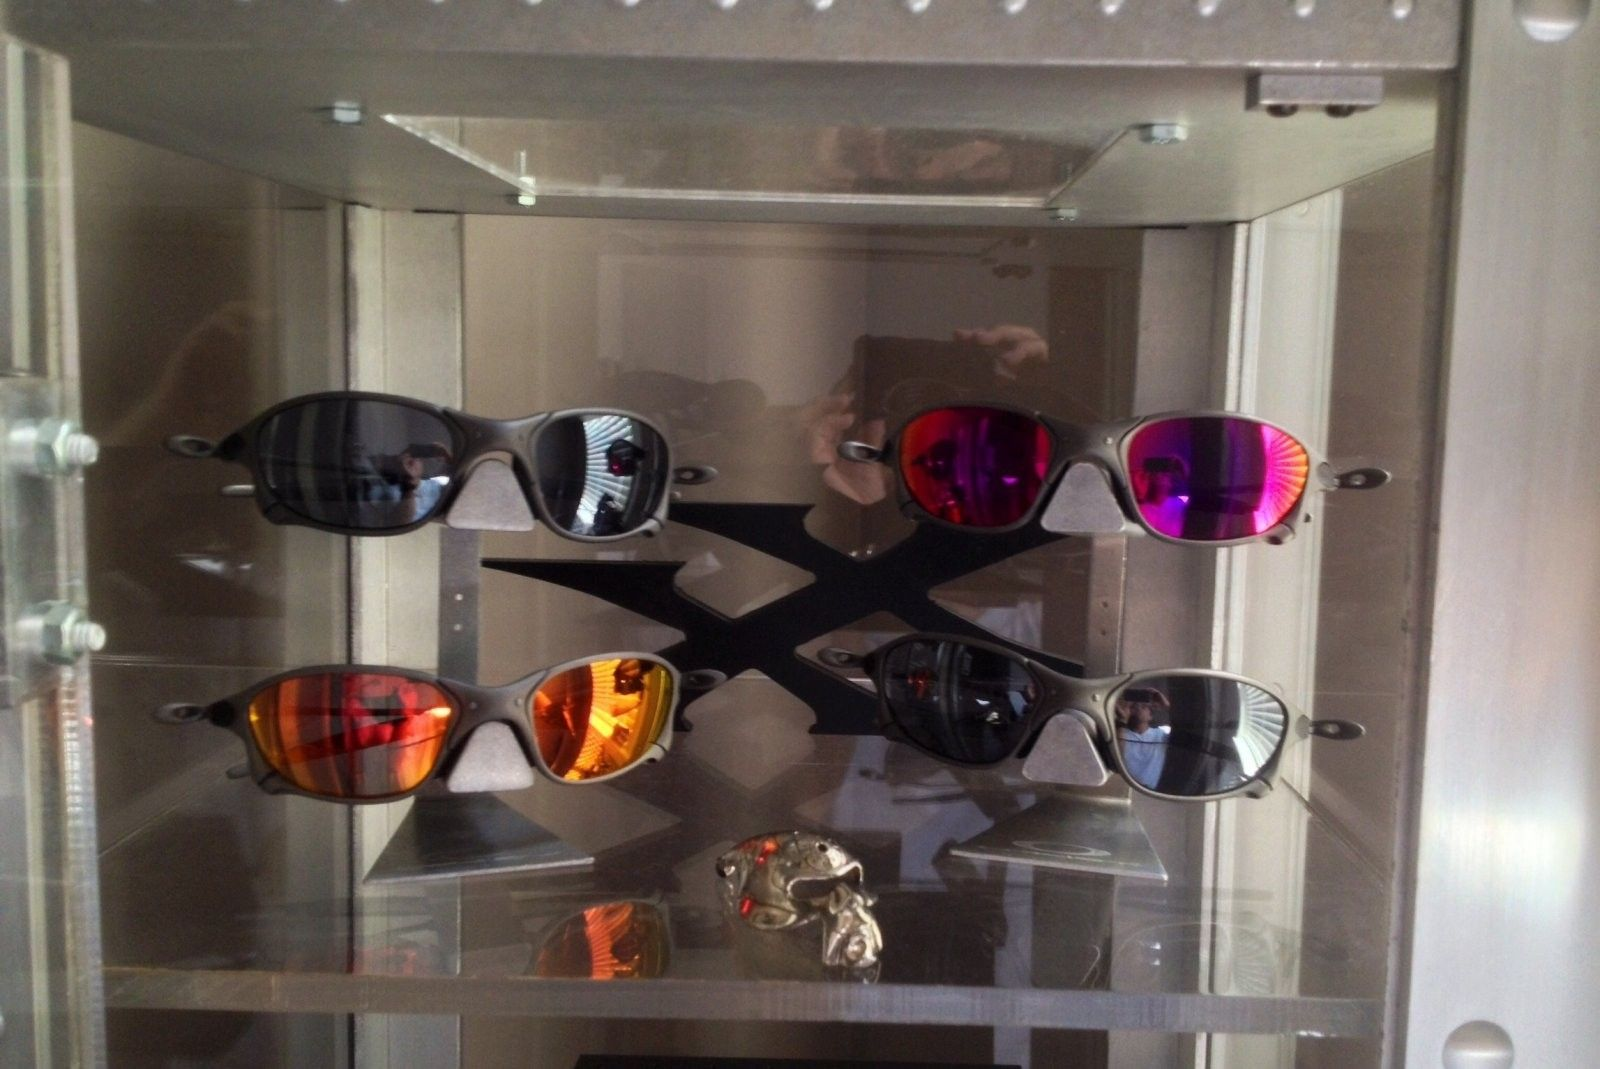 Rotor's collection since joining Oakley forum - image.jpg